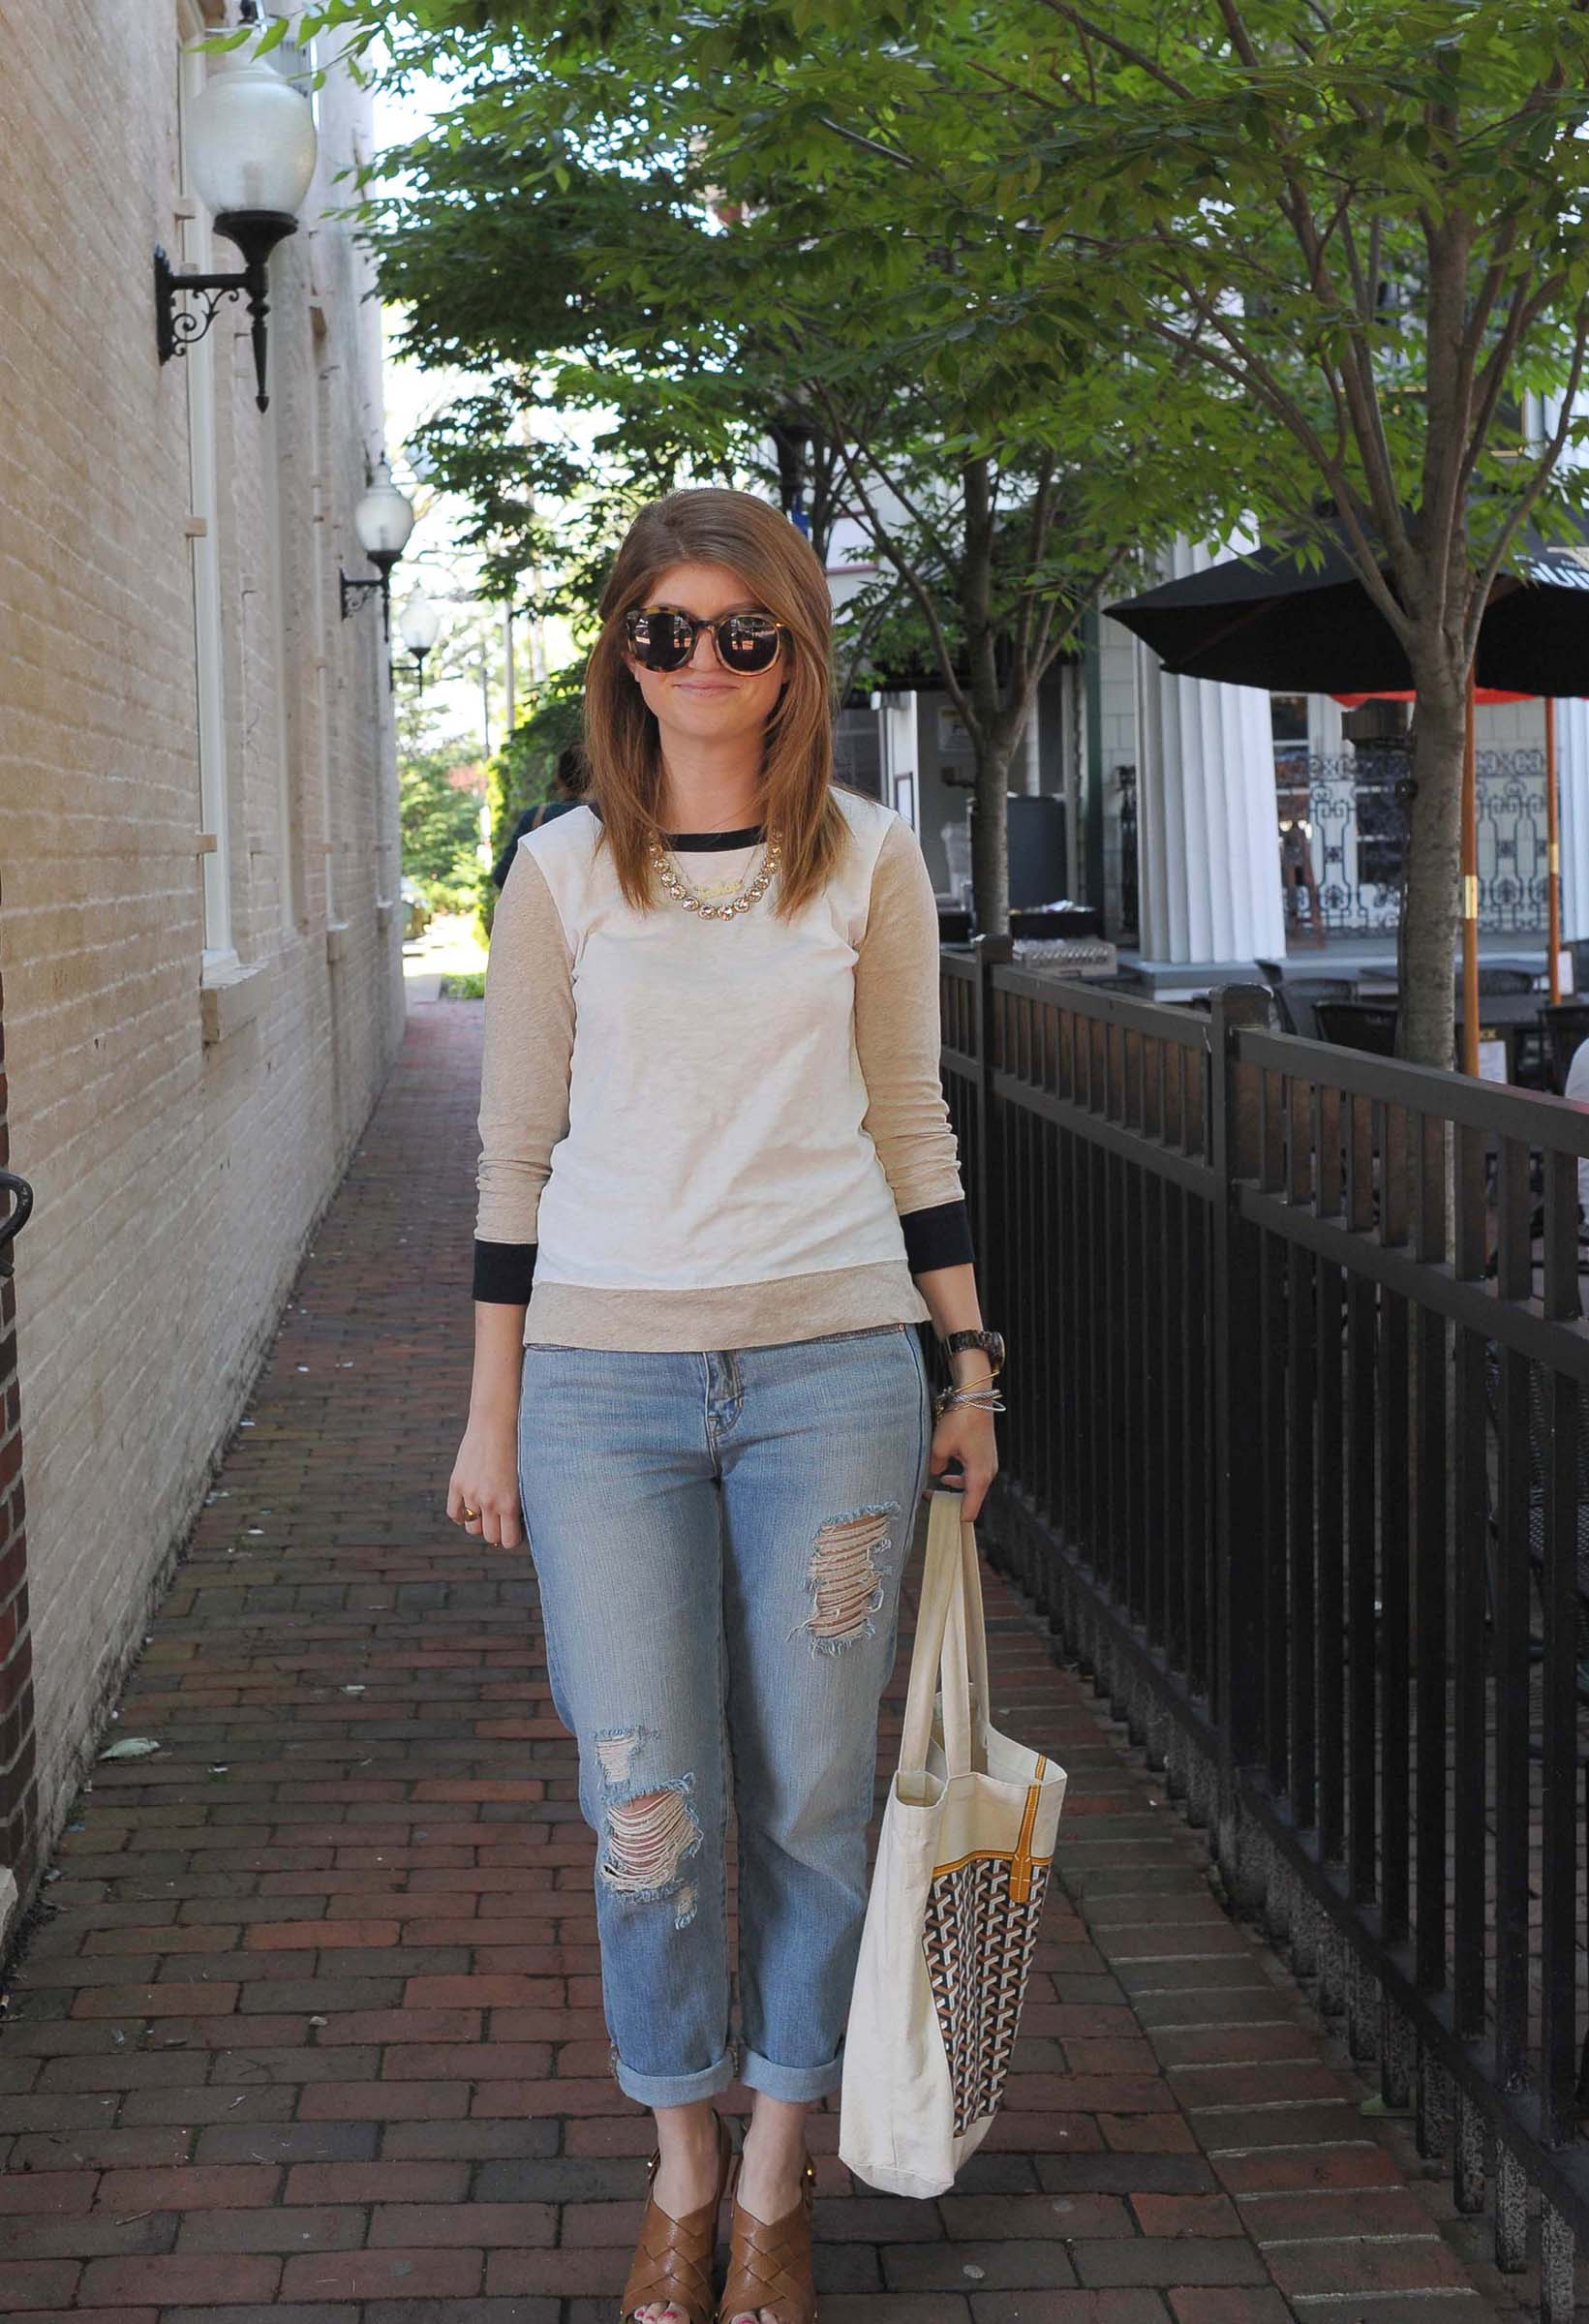 Outfit: [chic] baseball tee